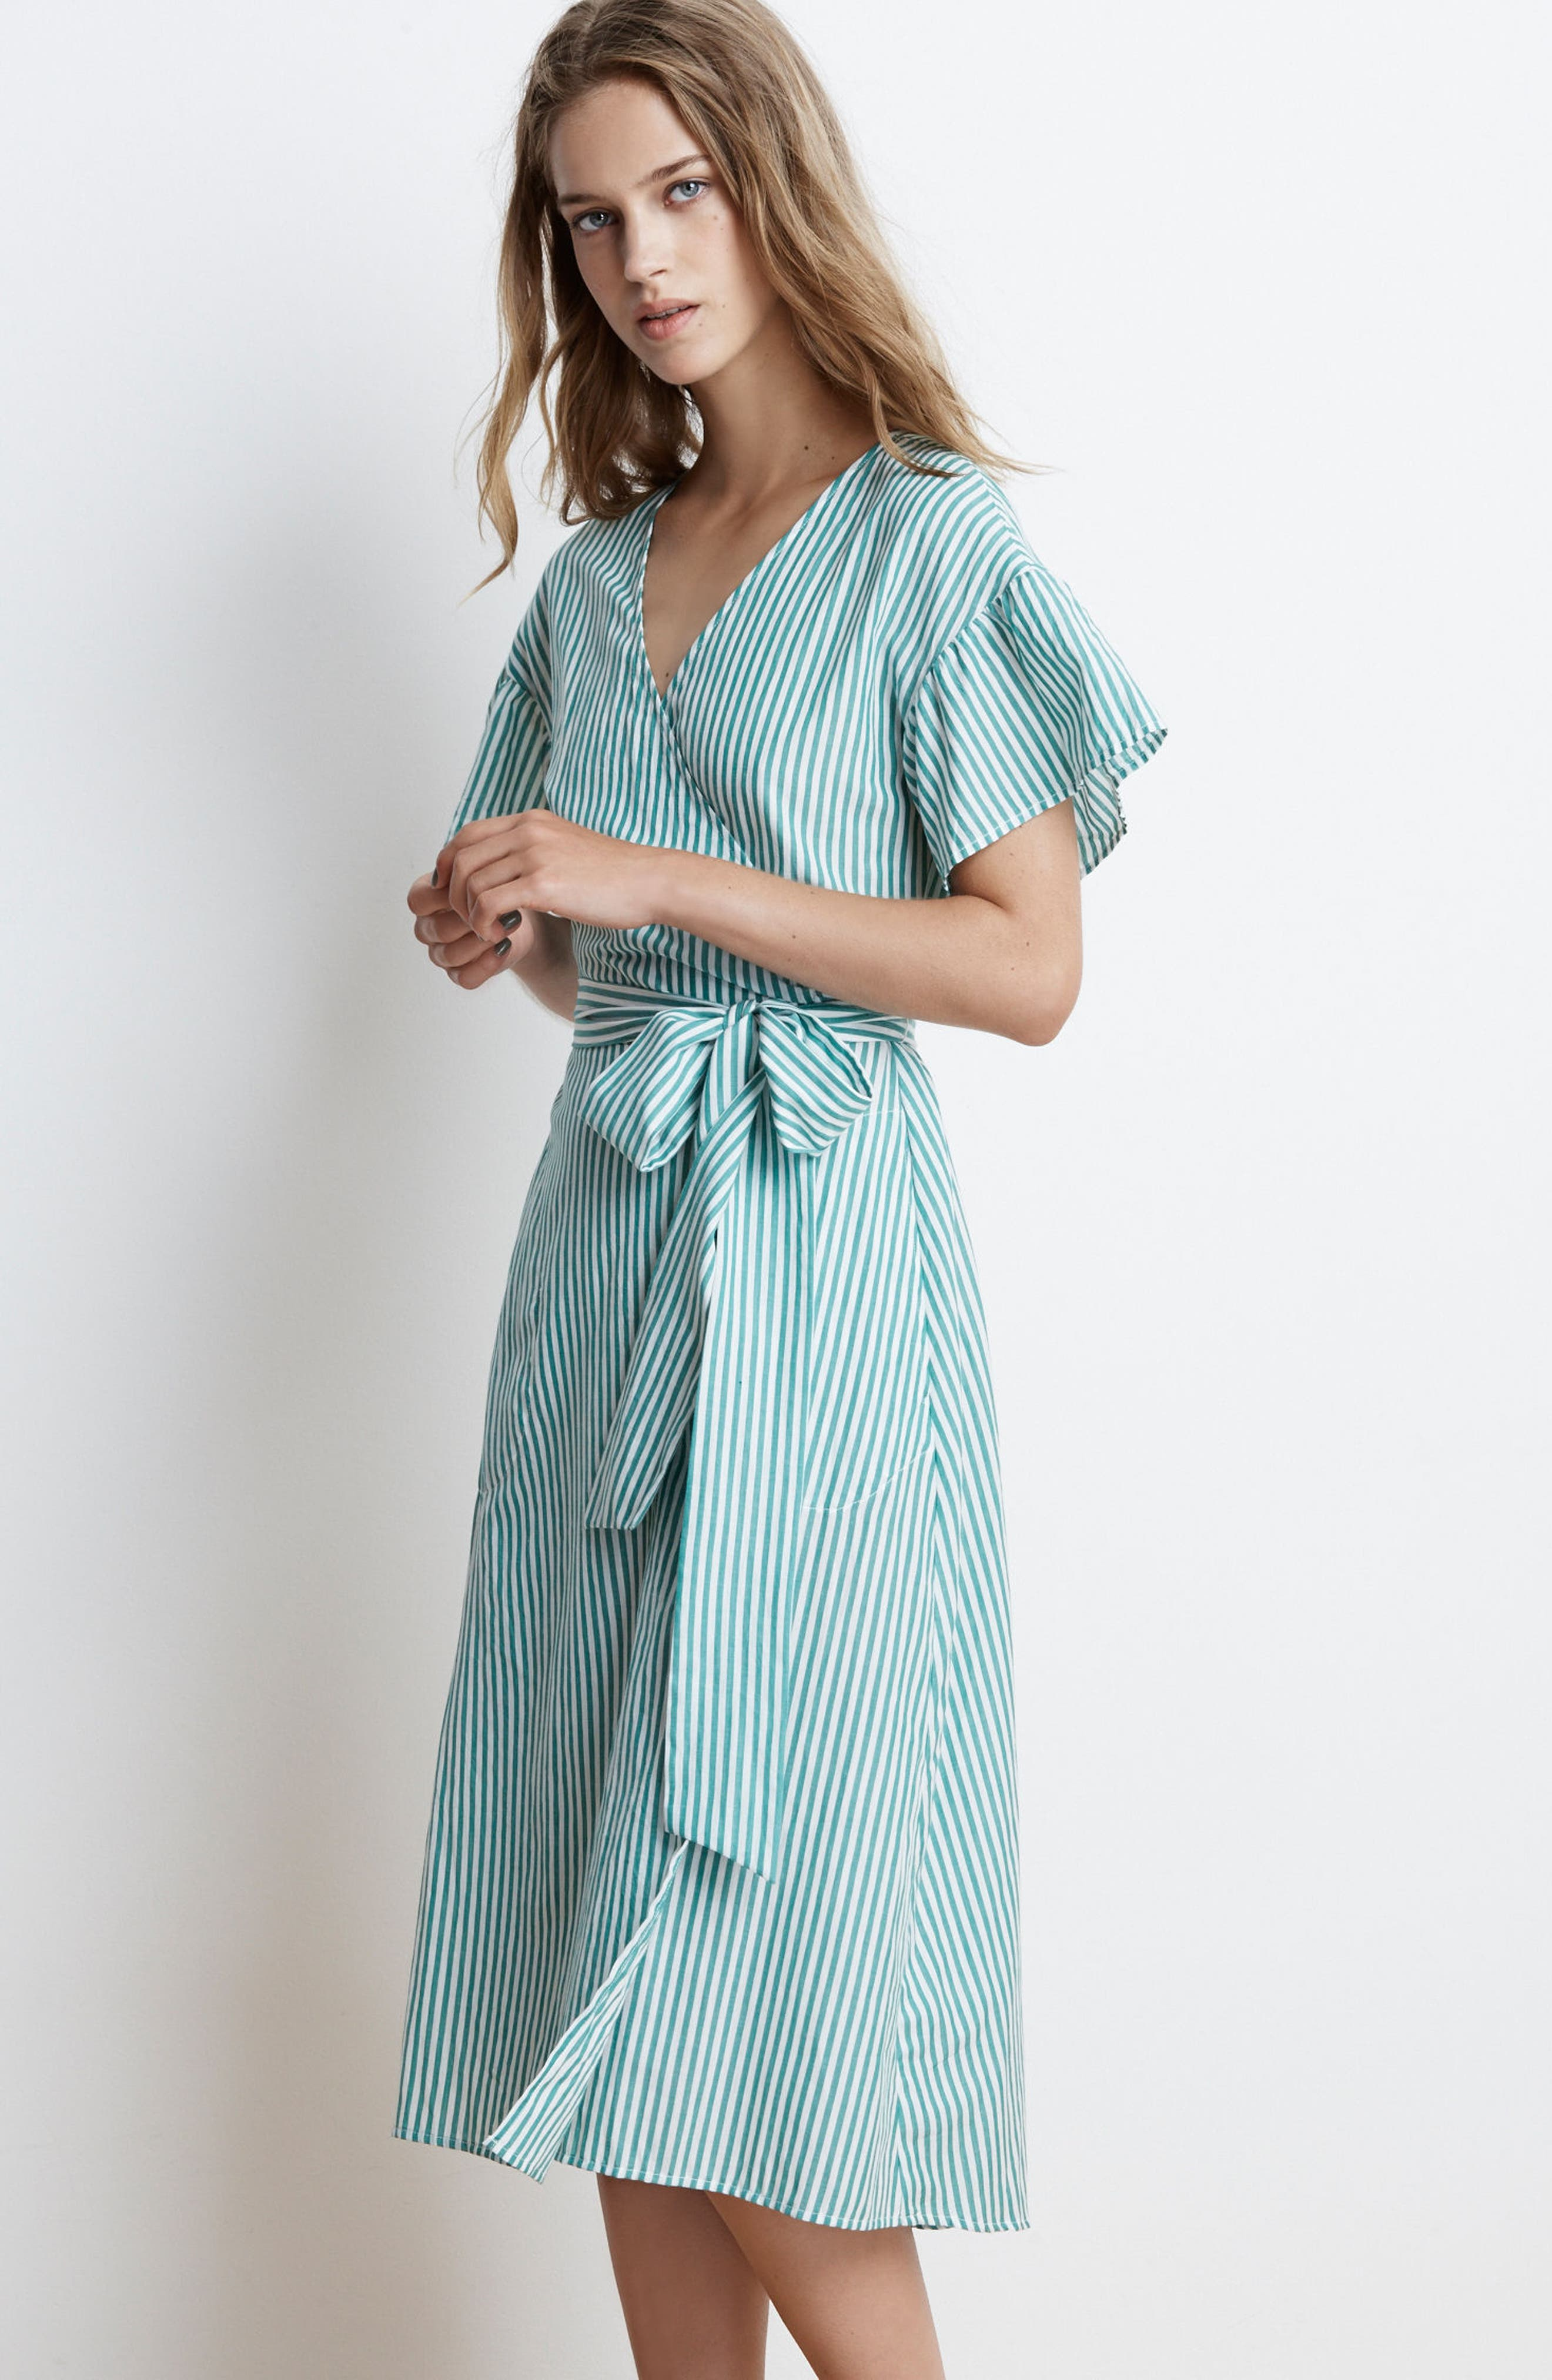 Stripe Cotton Wrap Dress,                             Alternate thumbnail 2, color,                             Green